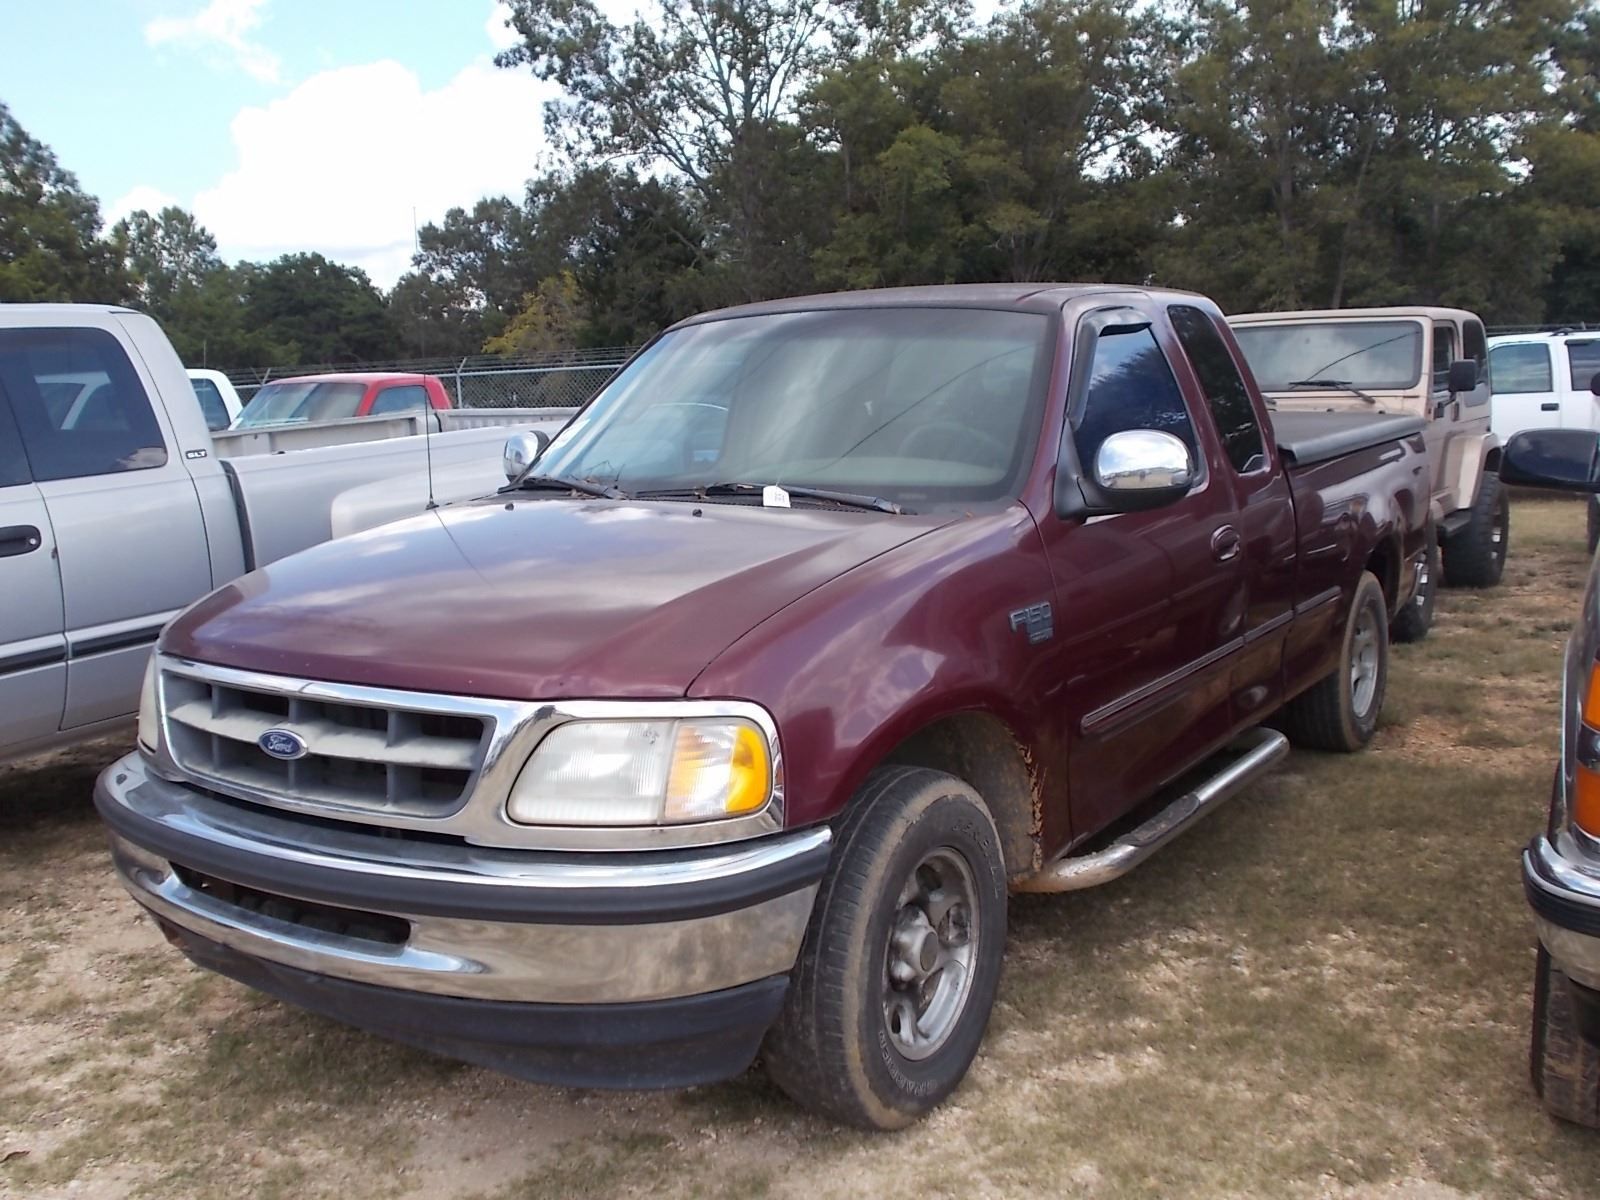 1998 ford f150 pickup vin sn 1ftzx17w9wnc05864 ext cab v8 triton gas engine a t bed cover odo. Black Bedroom Furniture Sets. Home Design Ideas